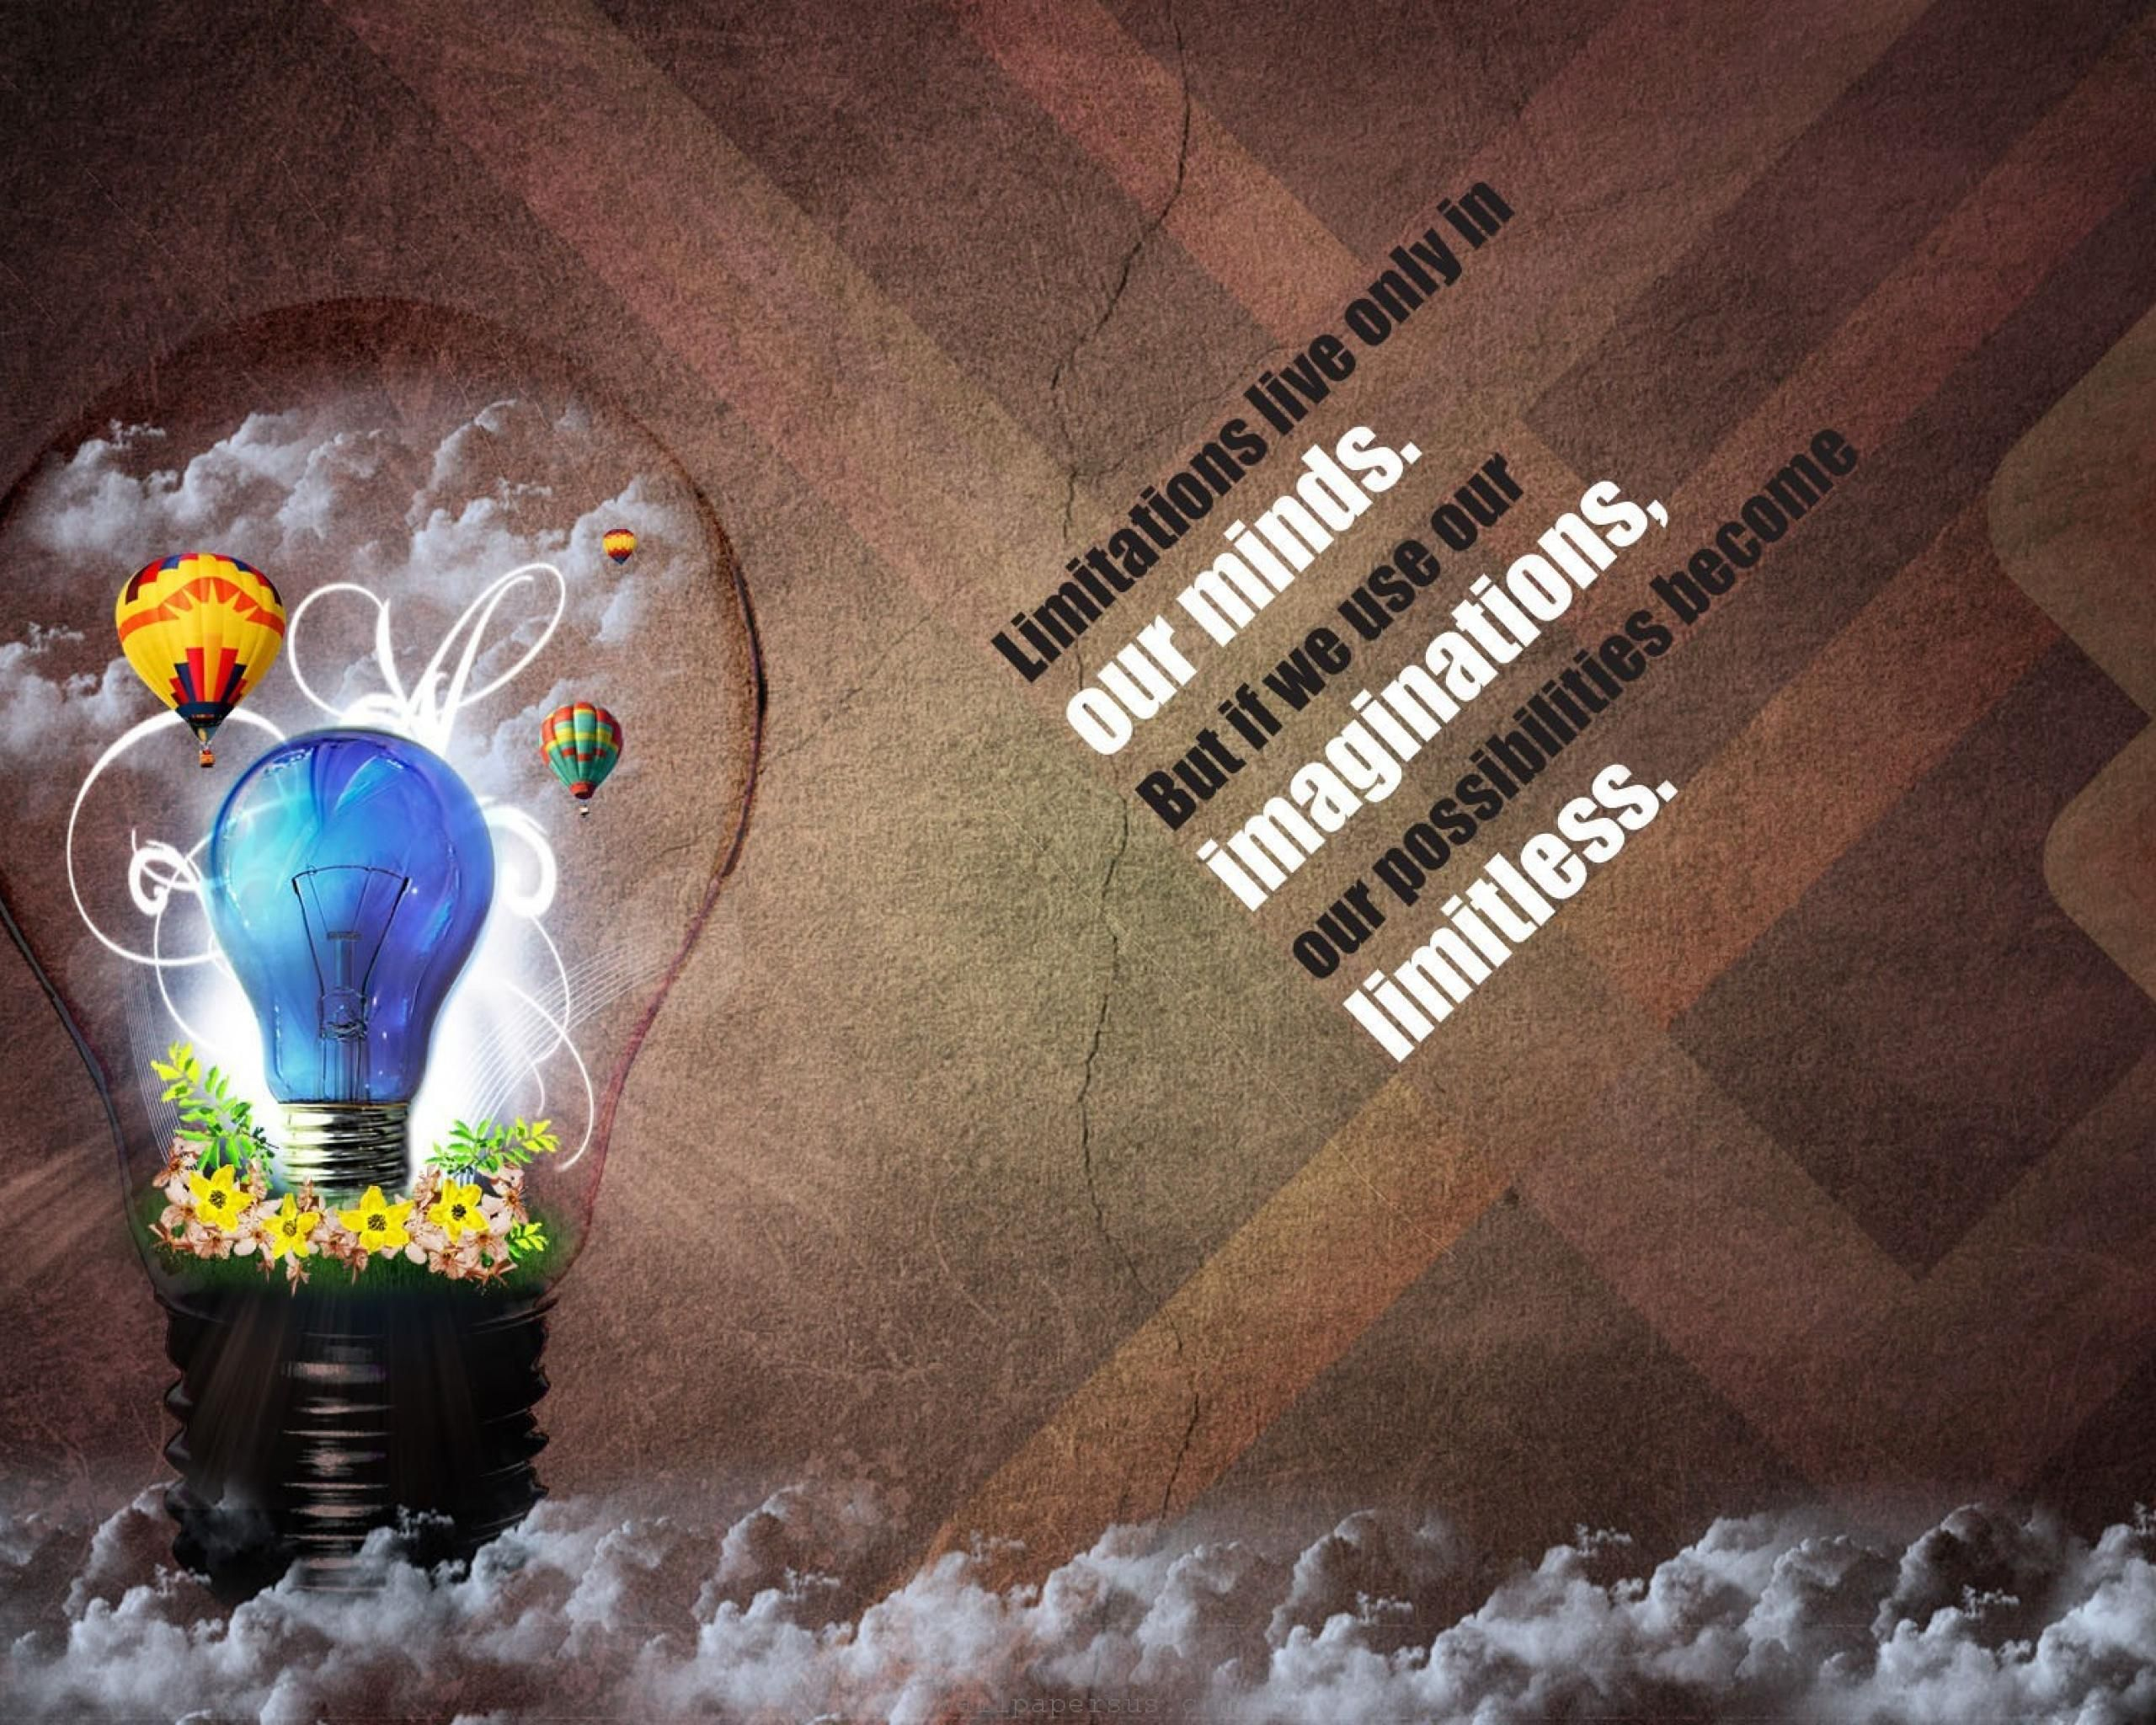 Limitations Live Only In Our Minds But If We Use Imaginations